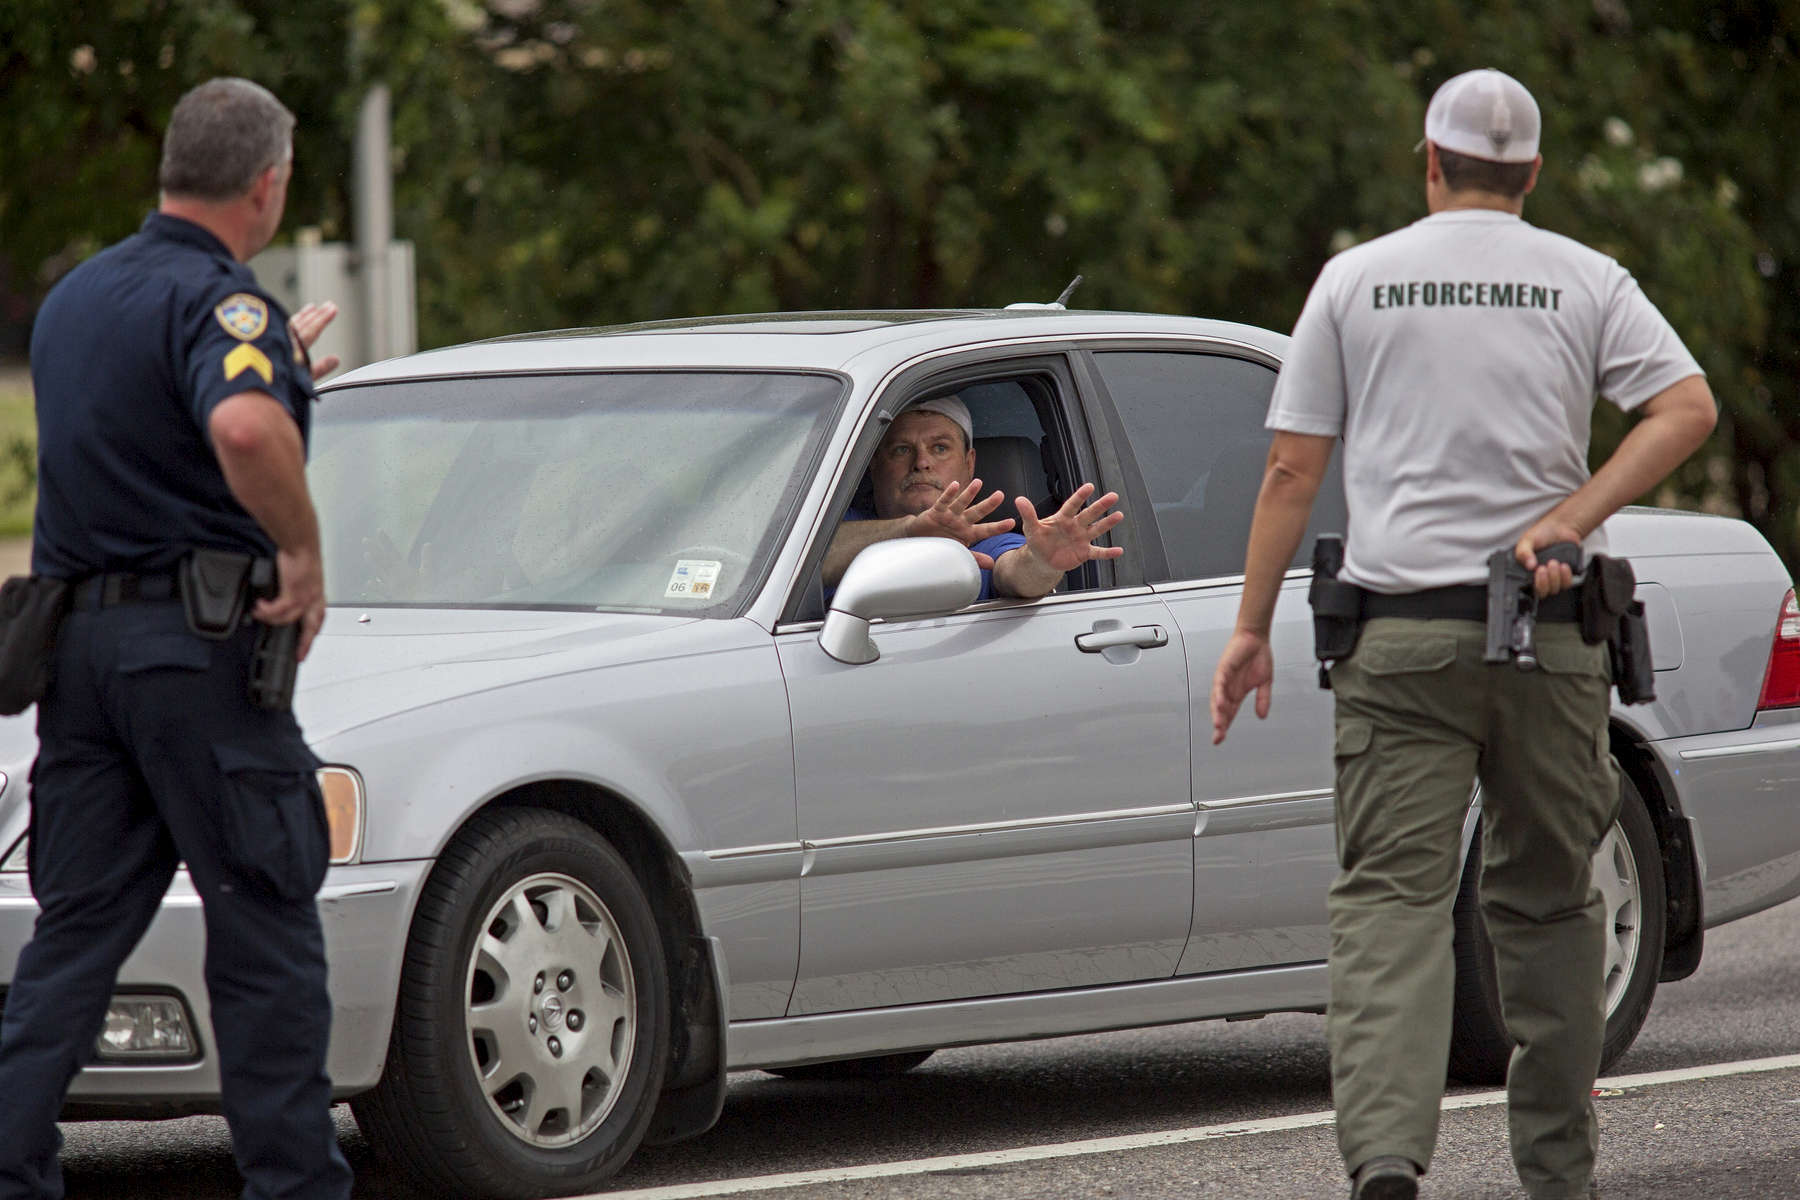 Police stop a car and direct the driver to show his hands after coming from the direction of a police shooting on Airline Highway in Baton Rouge, La. USA, on Sunday, July 17, 2016. The driver's car was searched, his identification checked, then he was allowed to continue. Three officers are confirmed dead and three others wounded after a shooting in Baton Rouge, Casey Rayborn Hicks, a spokeswoman for the East Baton Rouge Sheriff's Office said. (AP Photo/Max Becherer)